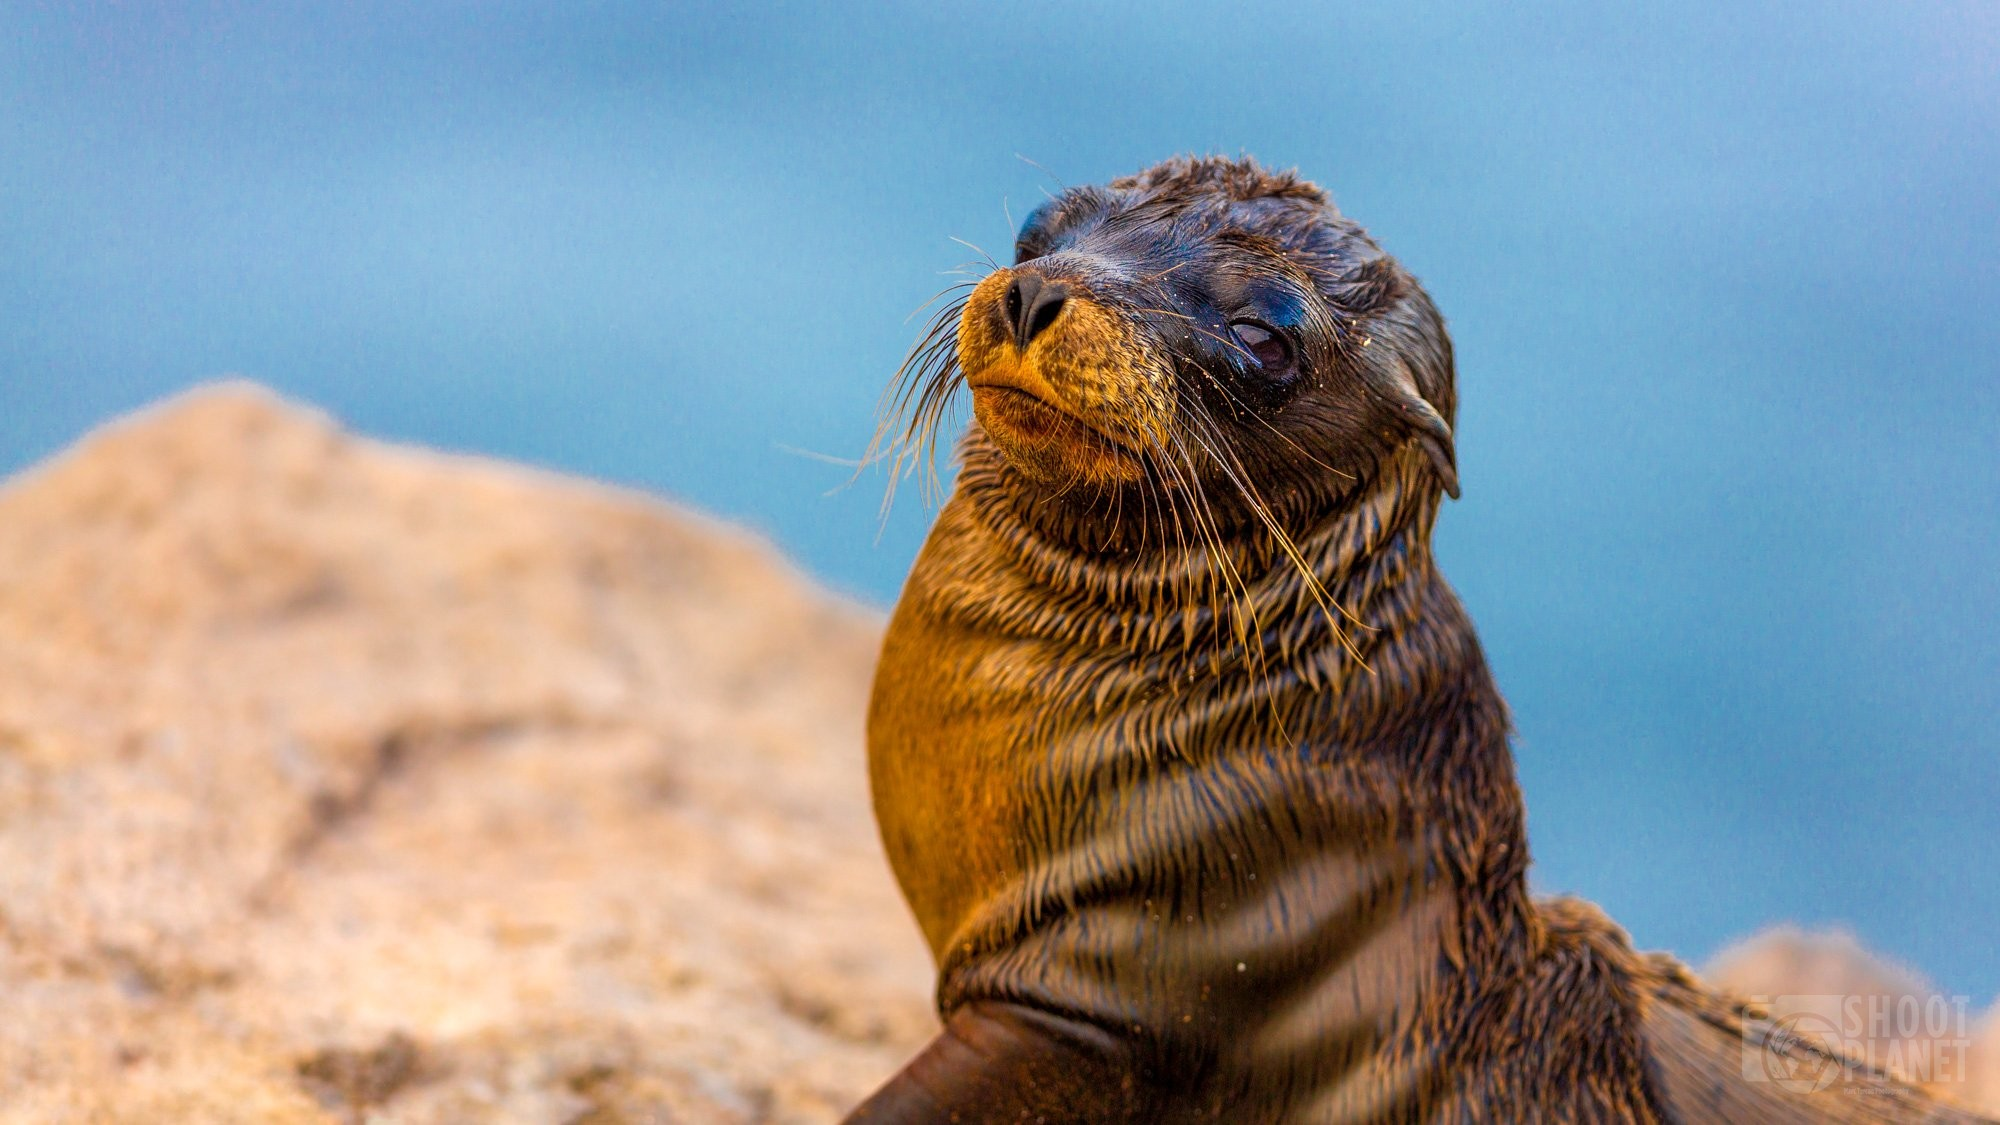 Baby fur seal portrait in Galapagos Islands